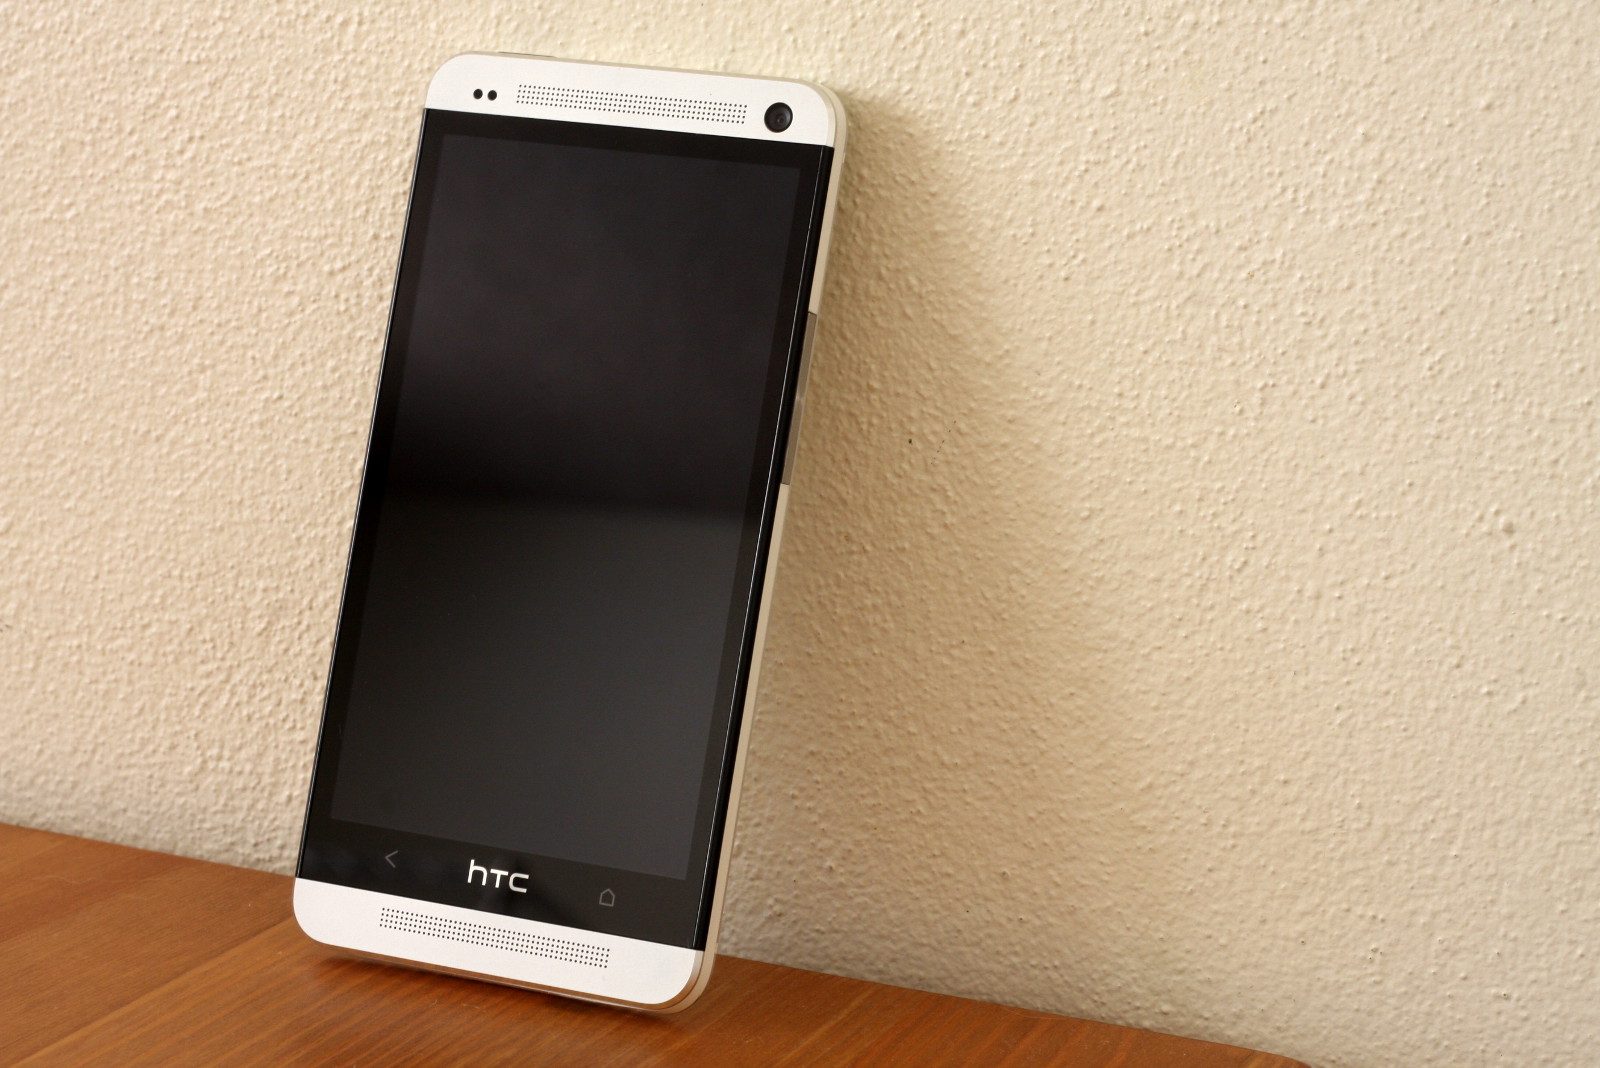 HTC M8 to be HTC's 2014 flagship, One to be updated first